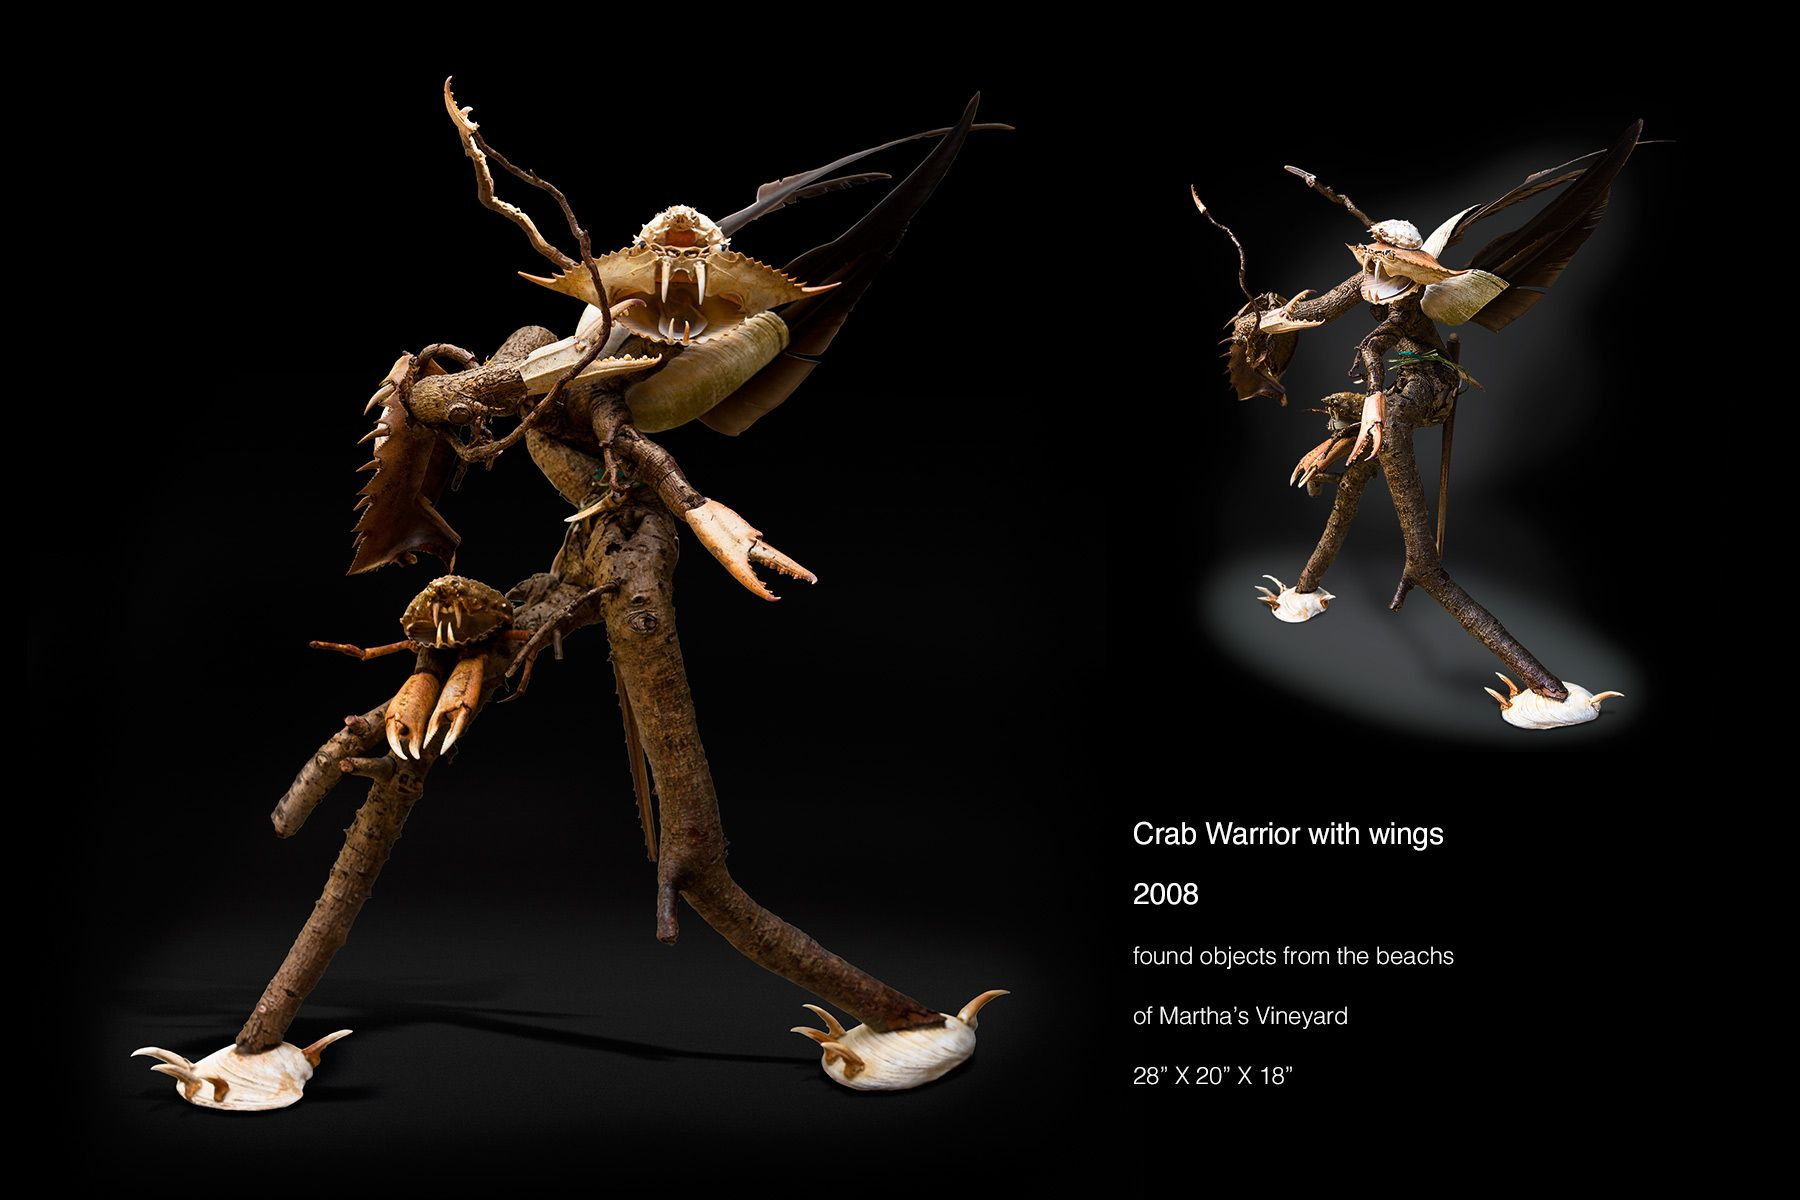 Crab Warrior with Wings